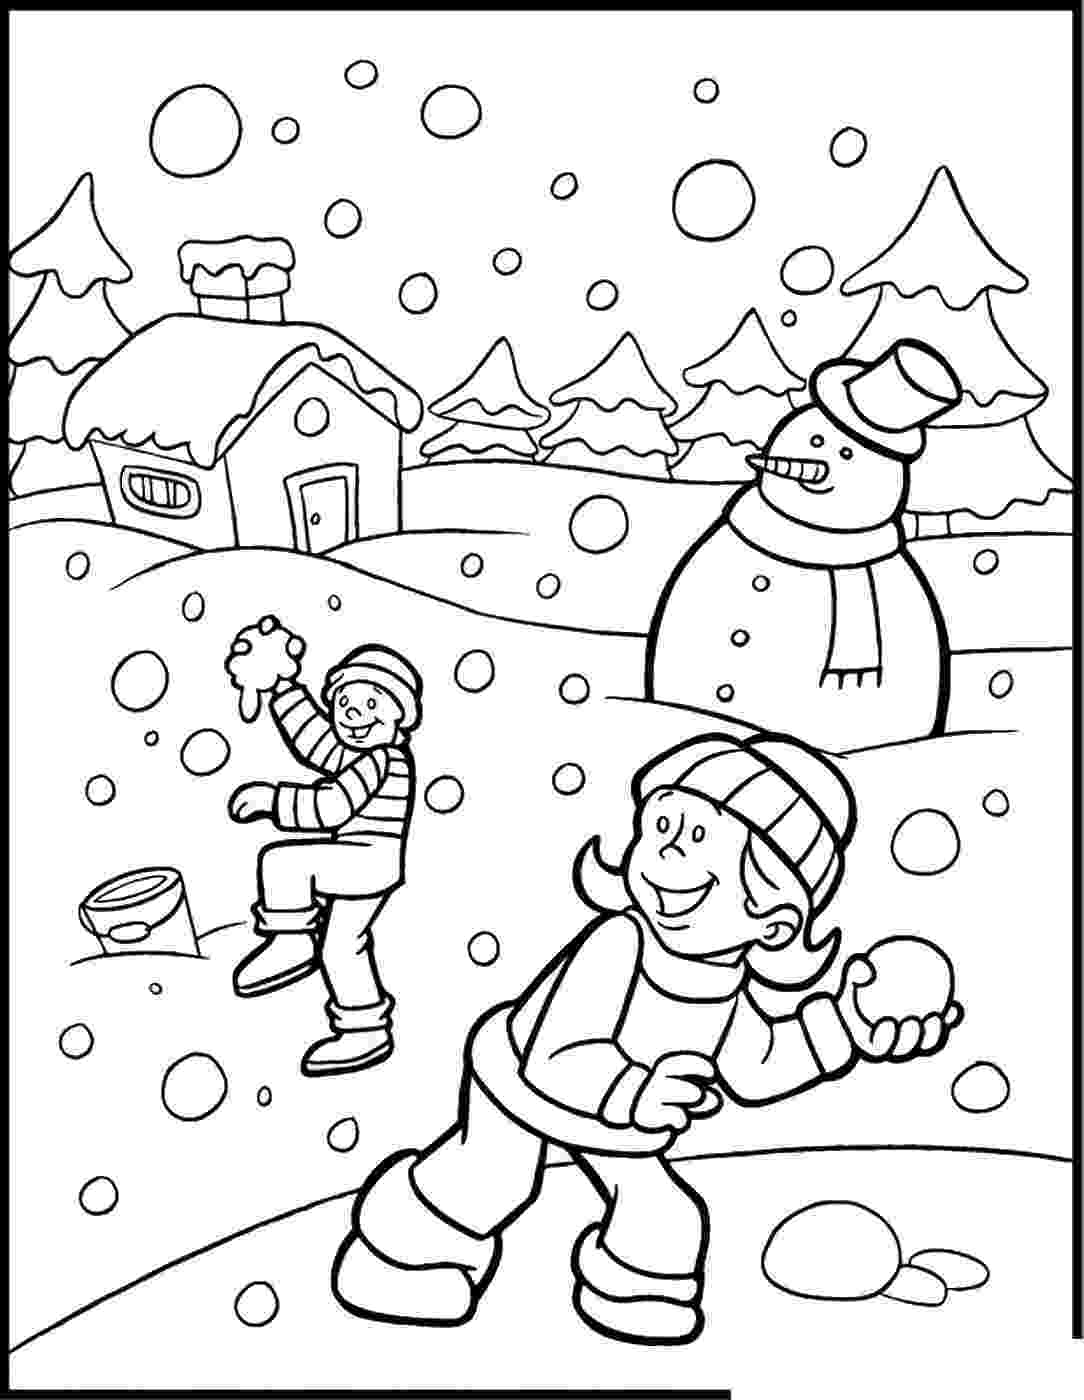 seasons coloring pages seasons coloring pages coloring pages to download and print coloring seasons pages